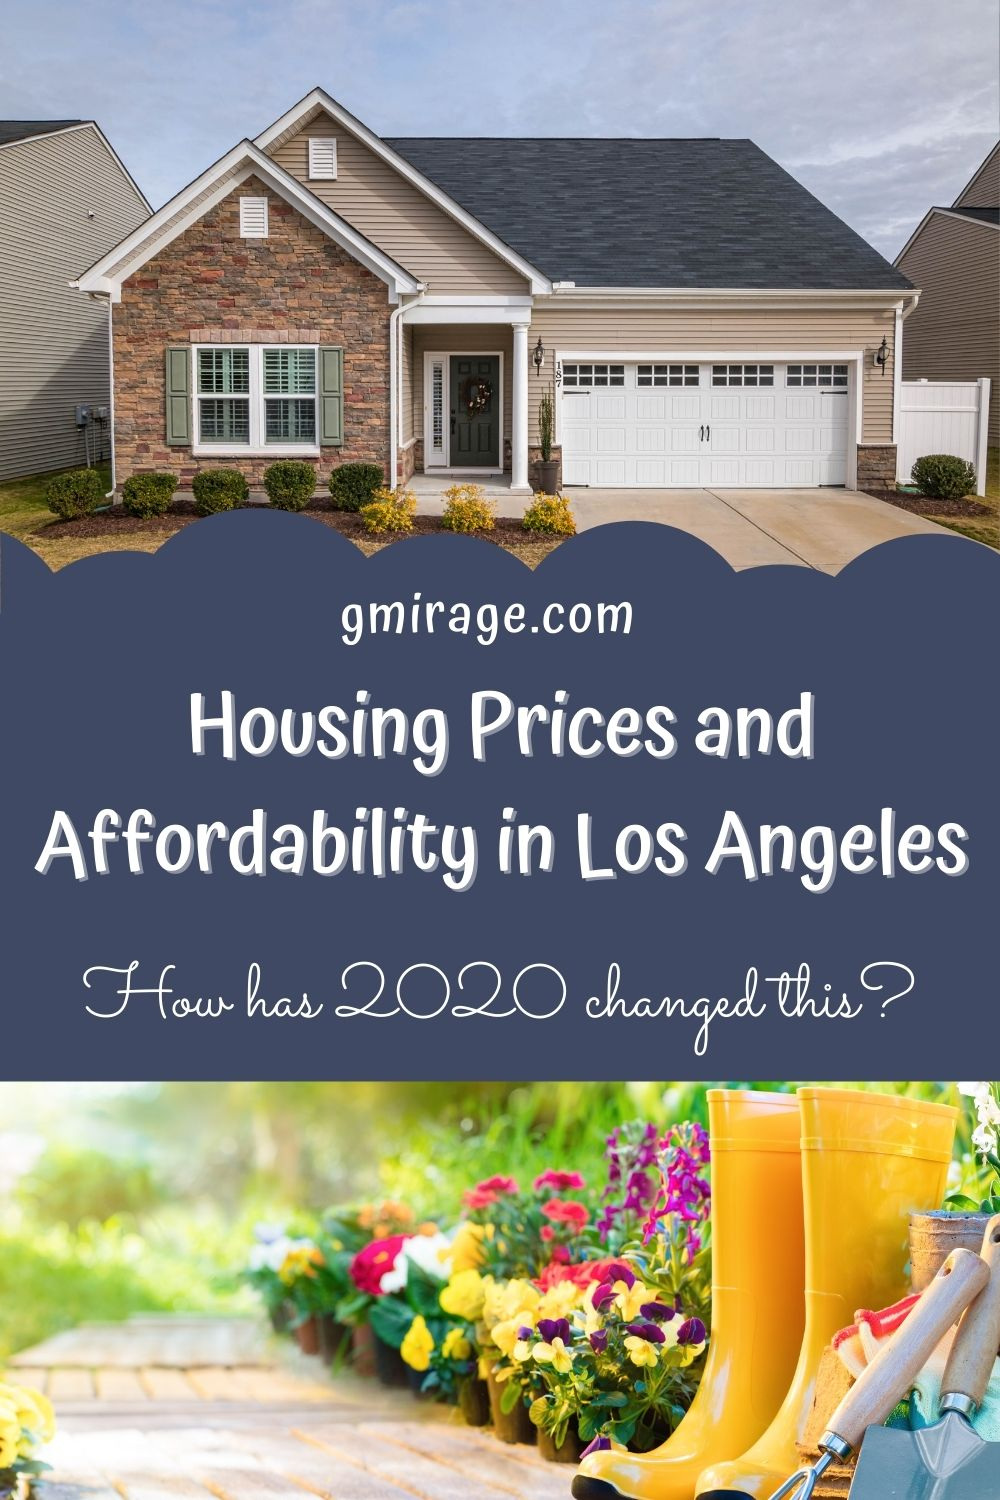 How Has 2020 Changed Housing Prices and Affordability in LA?